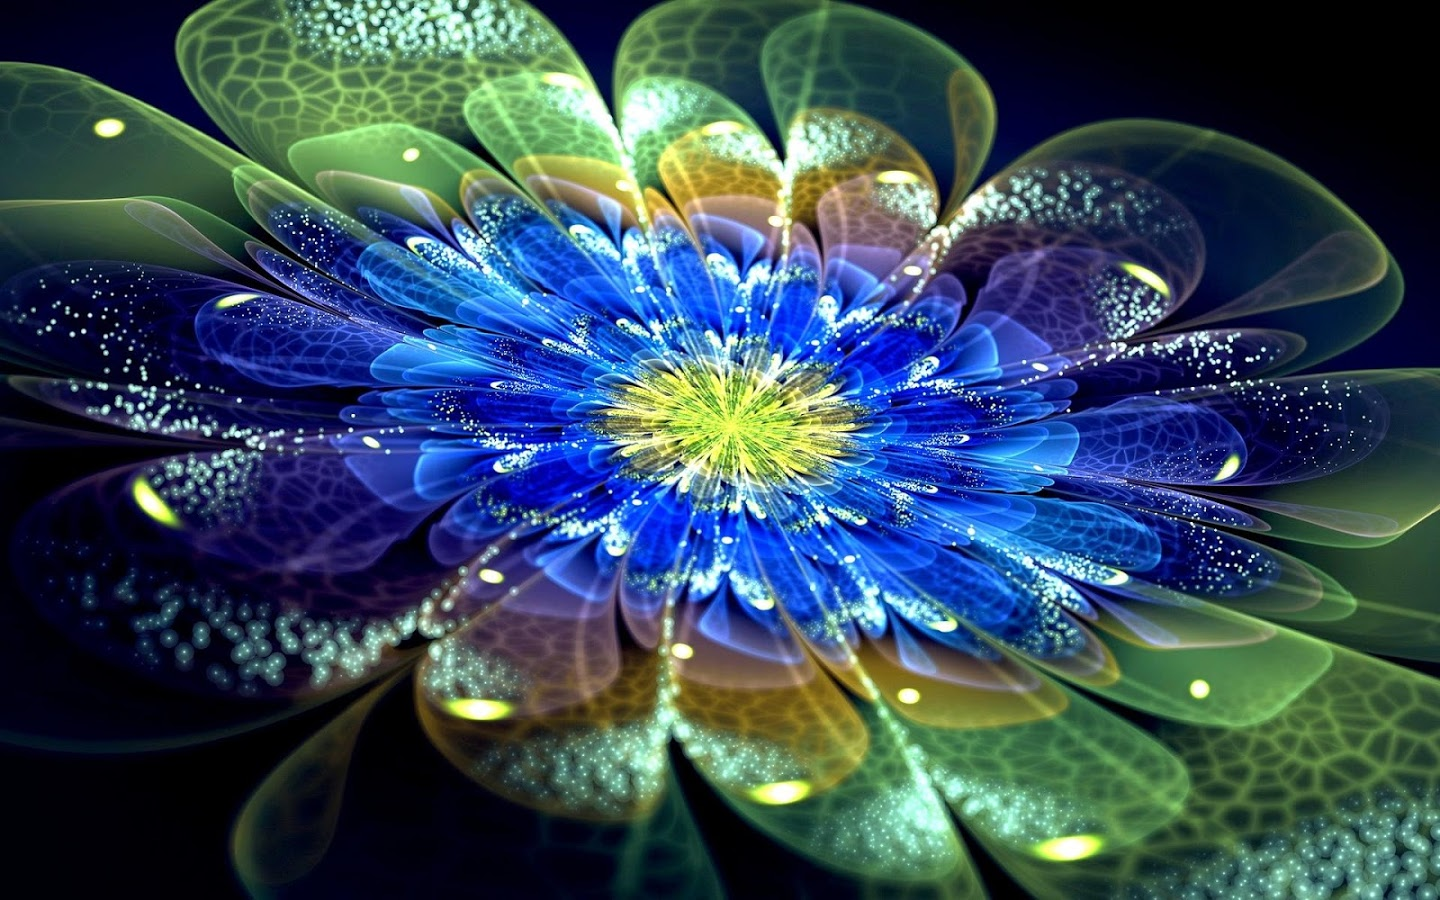 Get 4D Neon Flowers Live wallpaper its wonderful collection of 1440x900